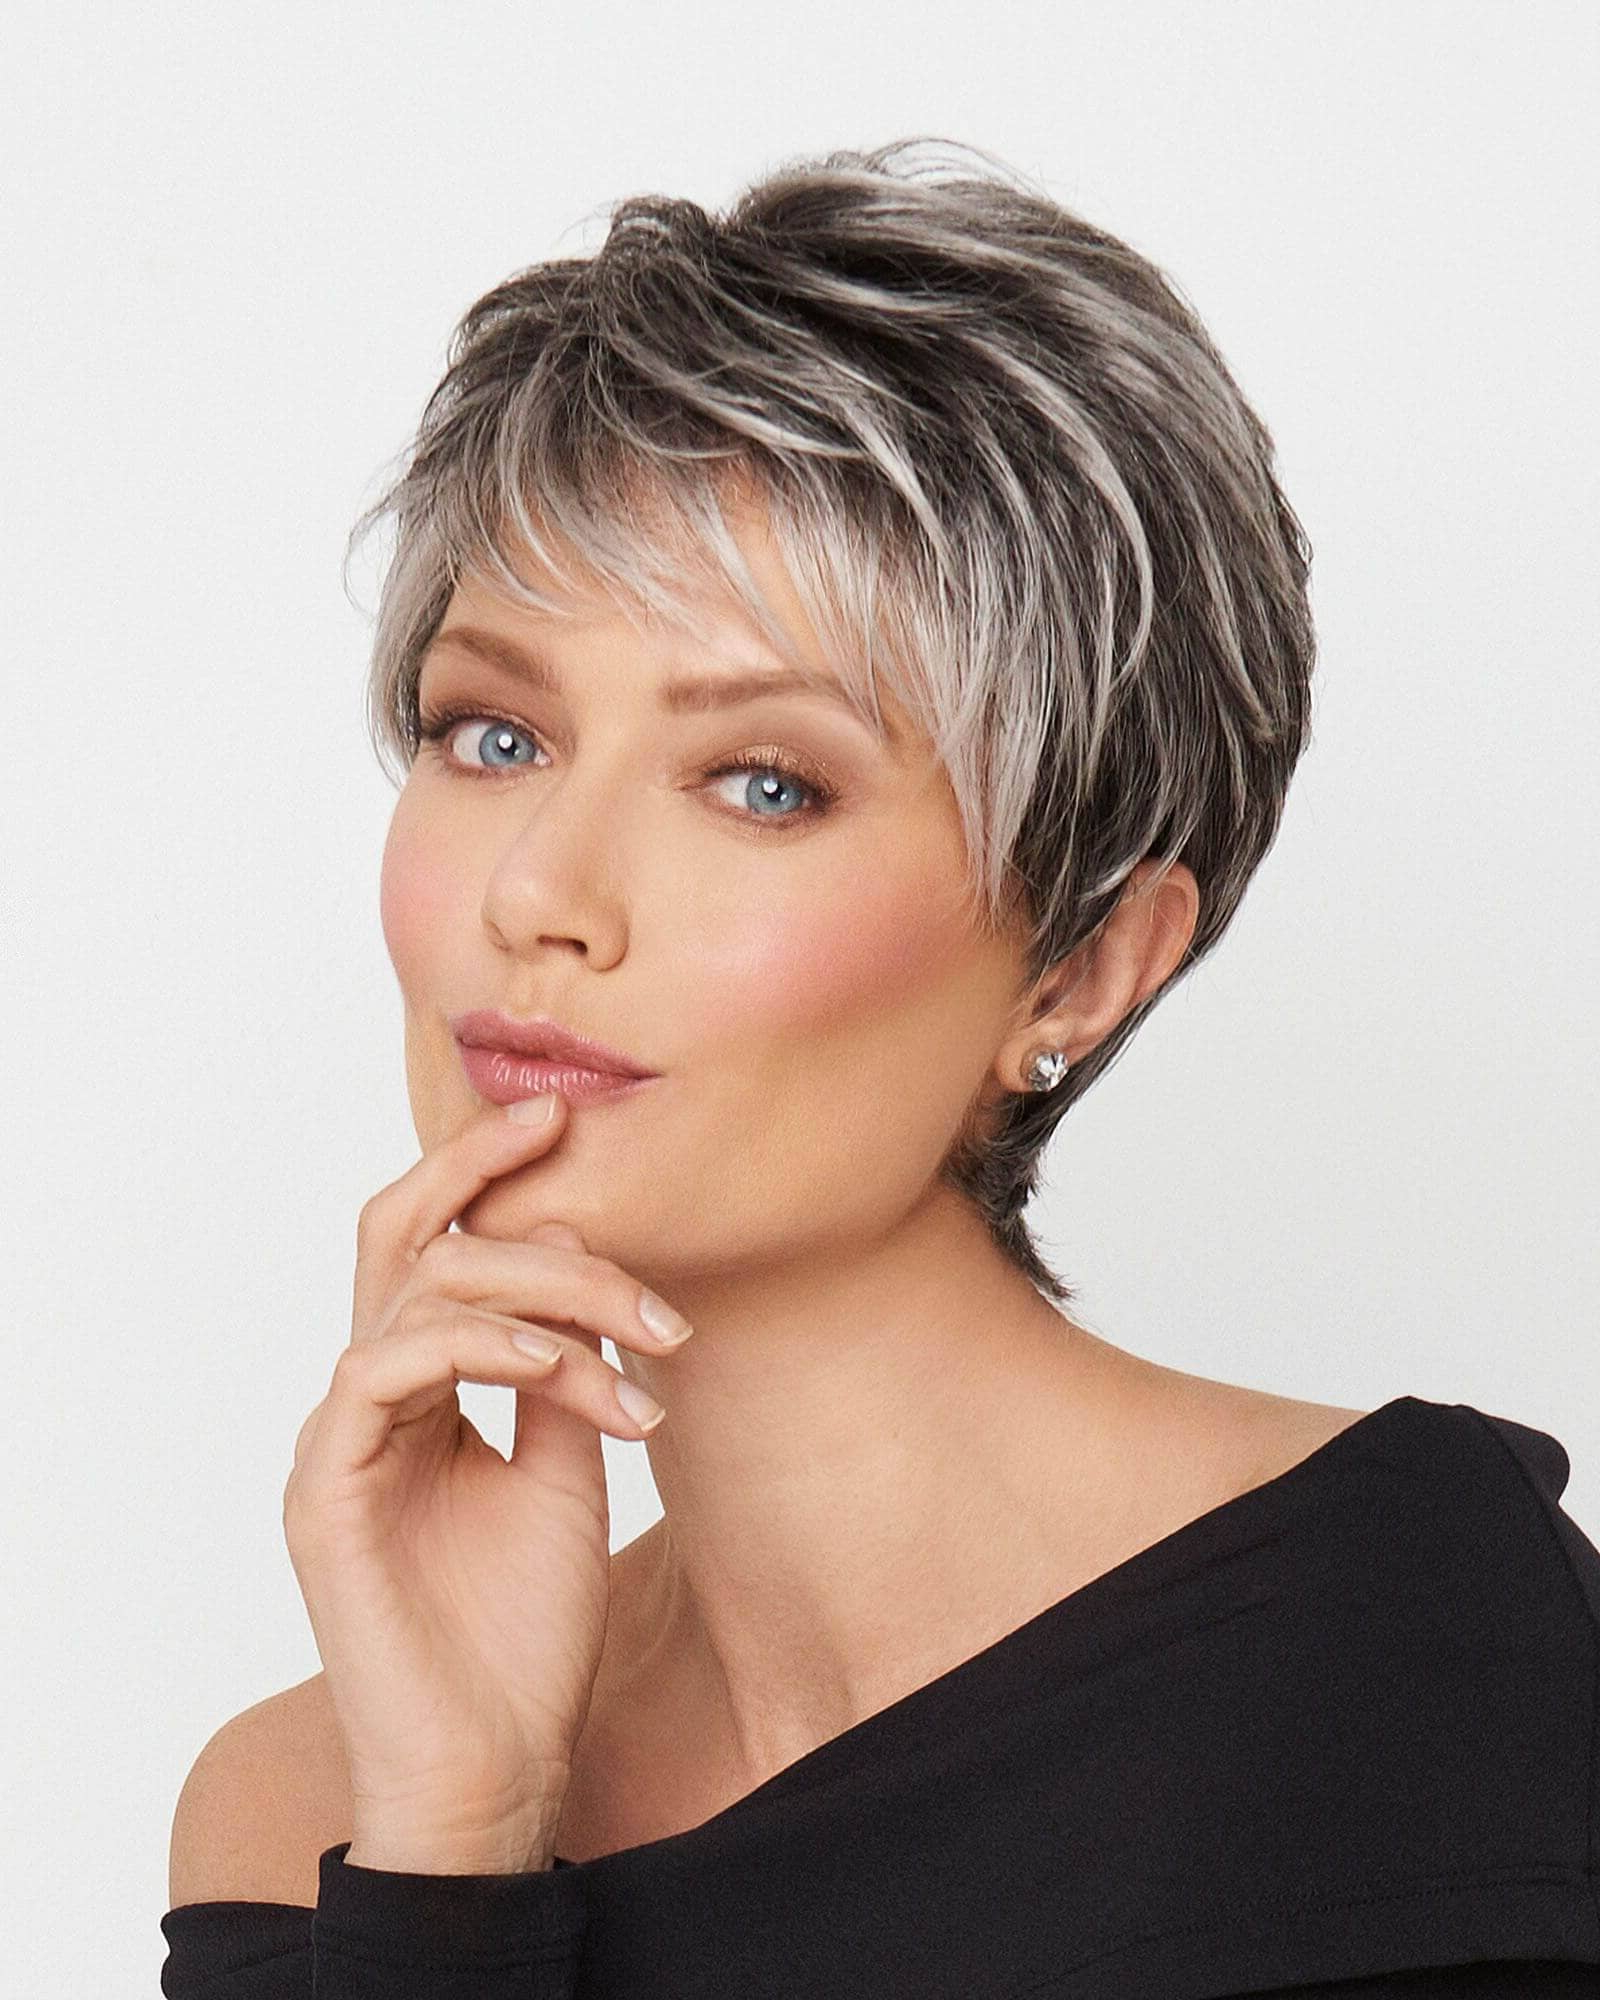 50 Pixie Haircuts You'll See Trending In 2018 With Silver Pixie Hairstyles For Fine Hair (View 10 of 20)